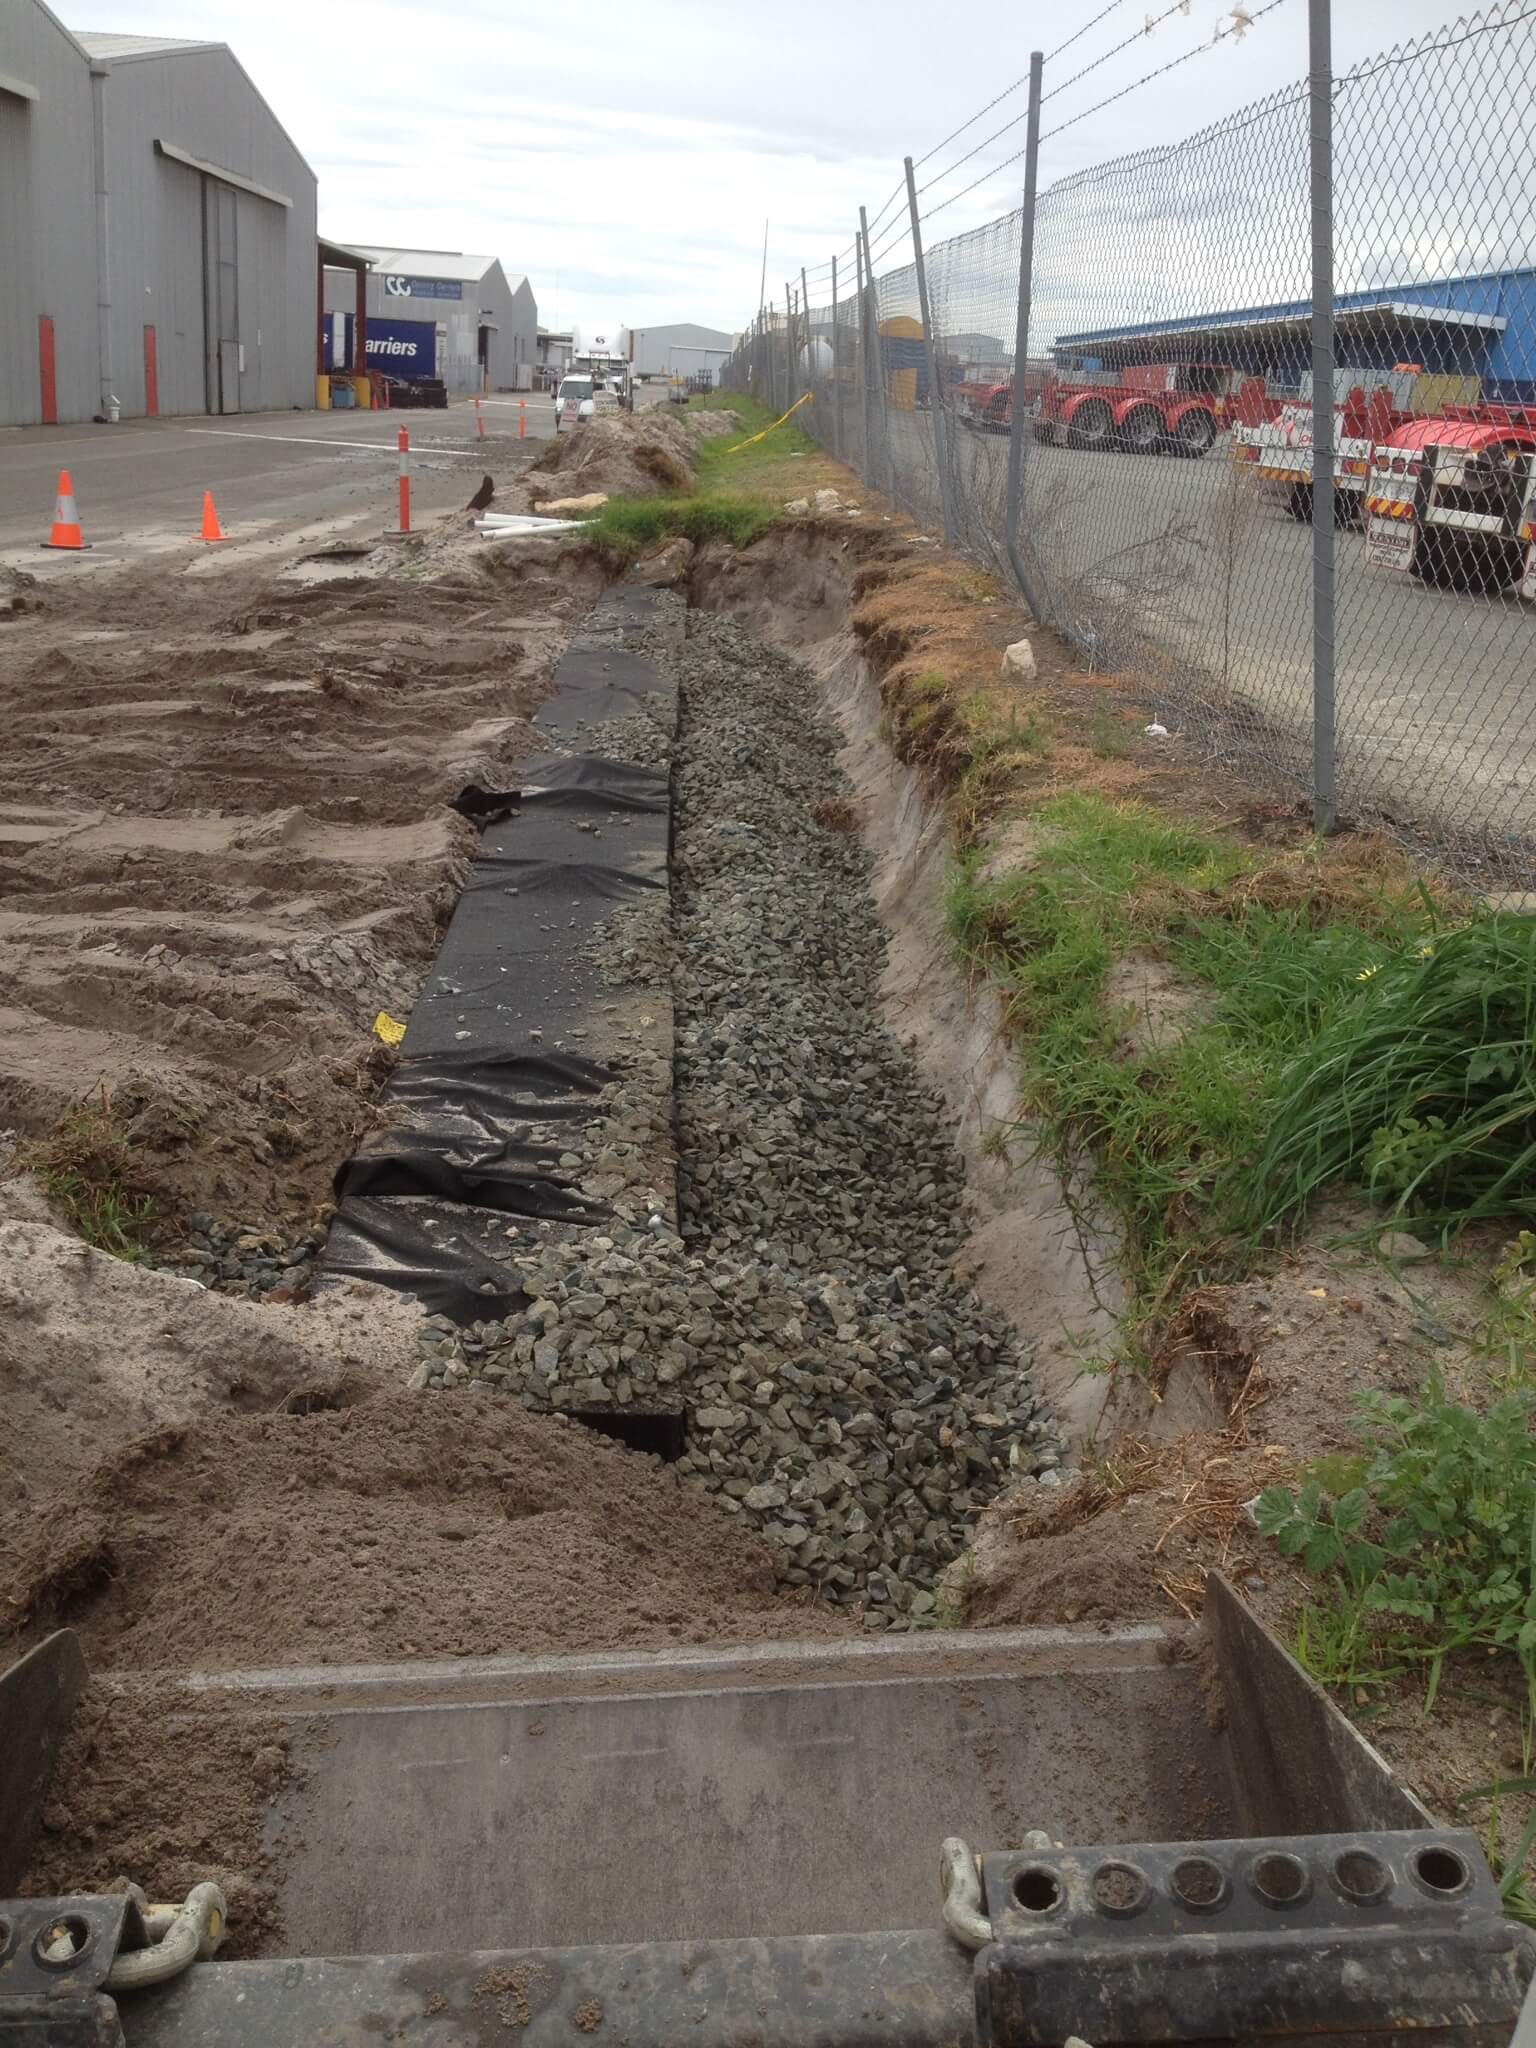 Everyday Plumbers Residential New Leach Drain Backfilling - Putting Gravel 2176